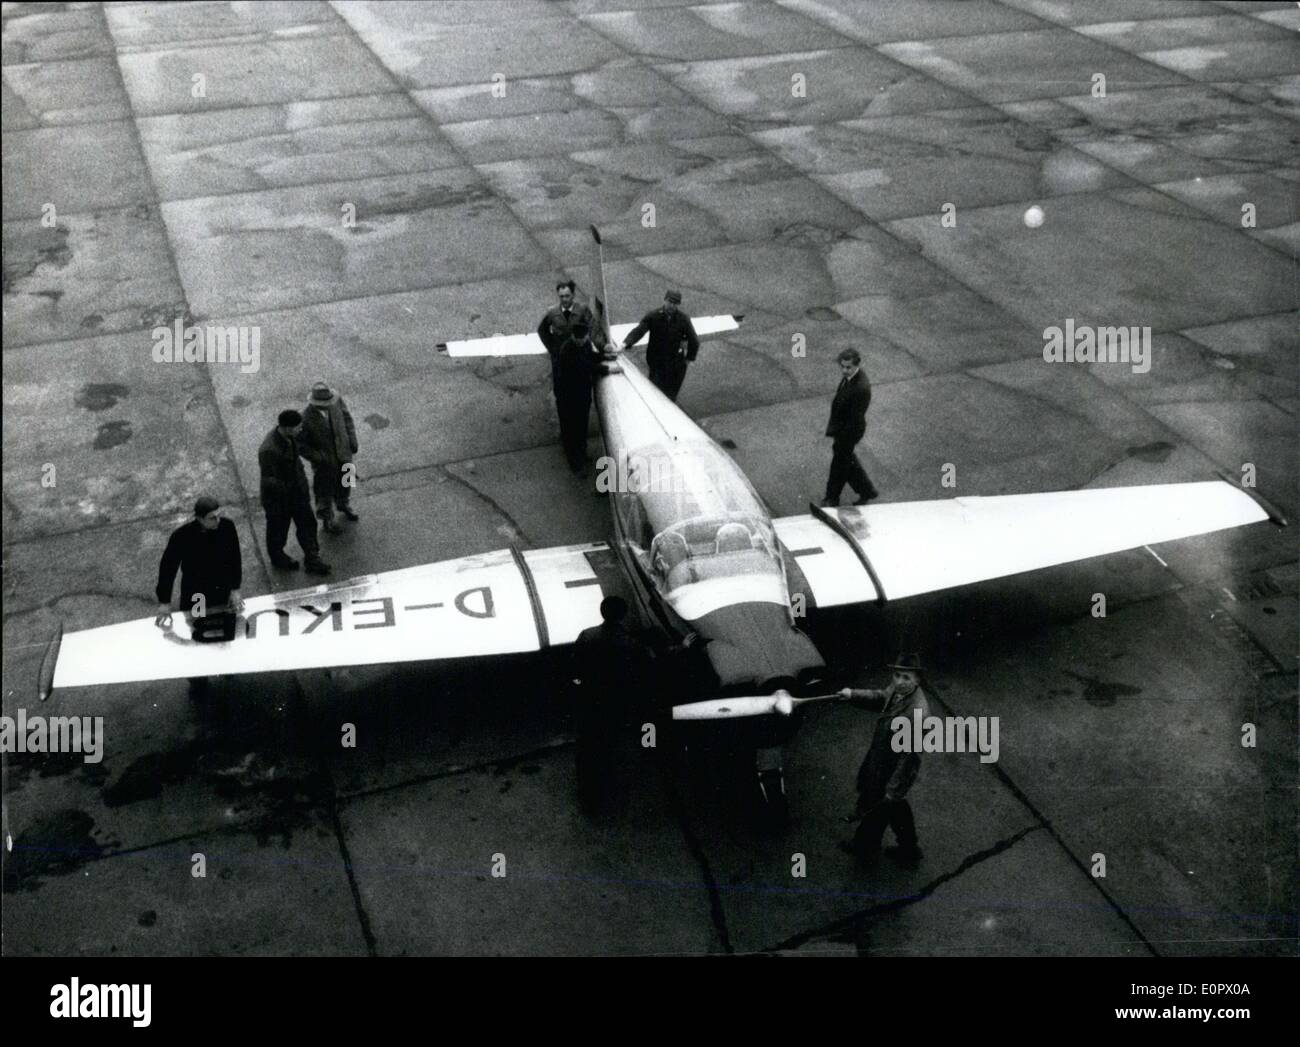 Mar. 17, 1957 - The Focke-Wulf company had built the first sport plane in Bremen. The BL 500 is a four seater has a 140HP motor - Stock Image